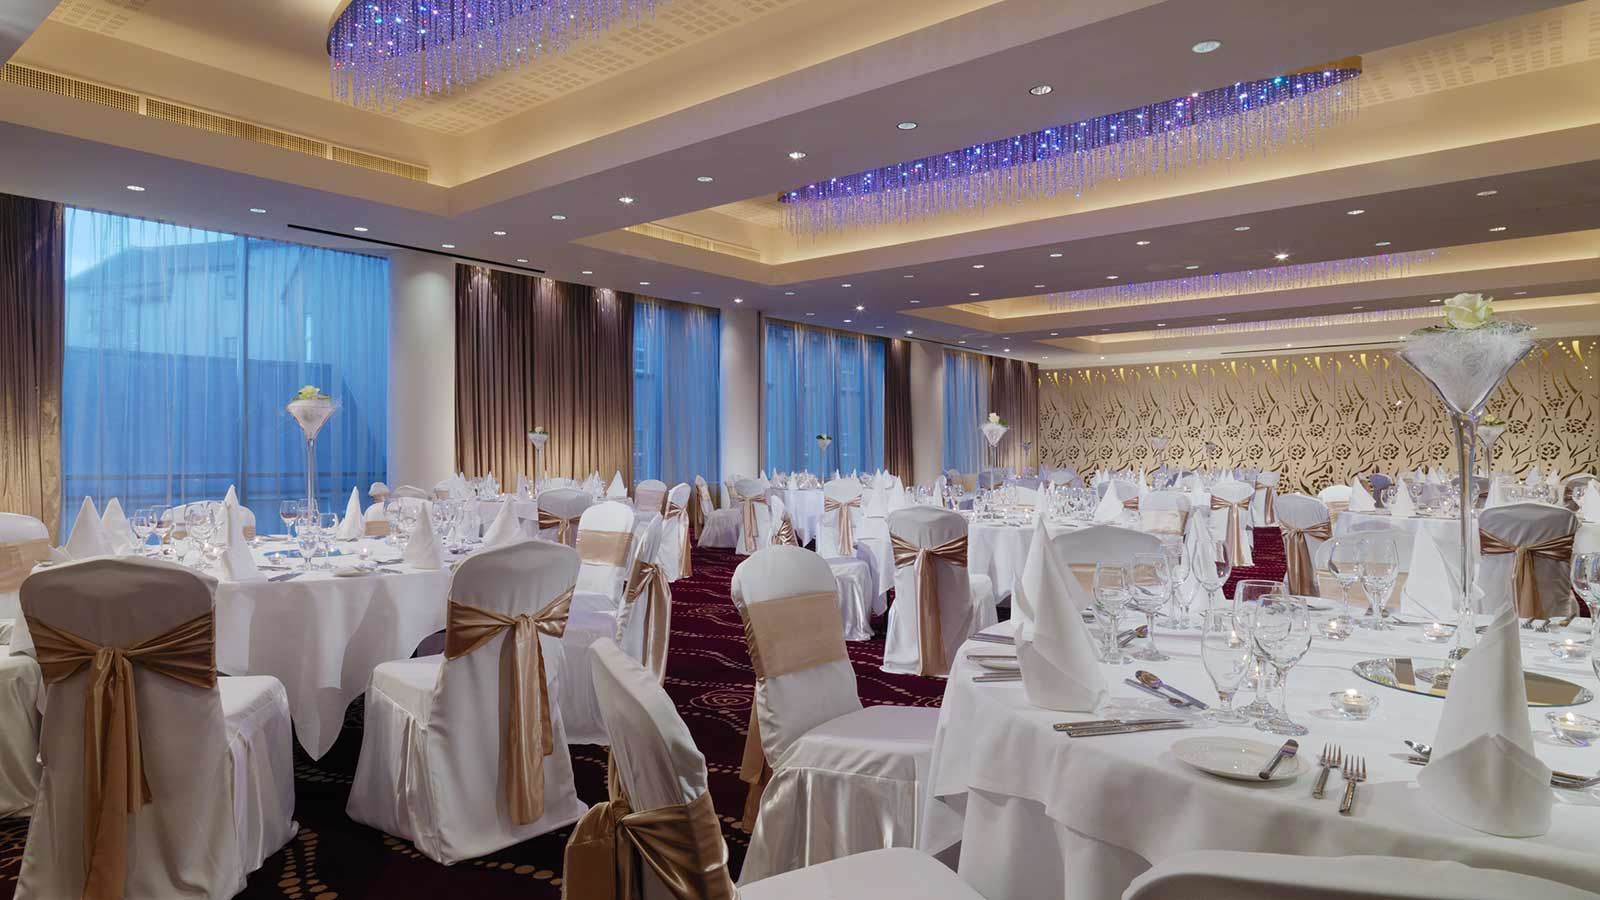 The Hoey function suite in Sheraton Athlone Hotel